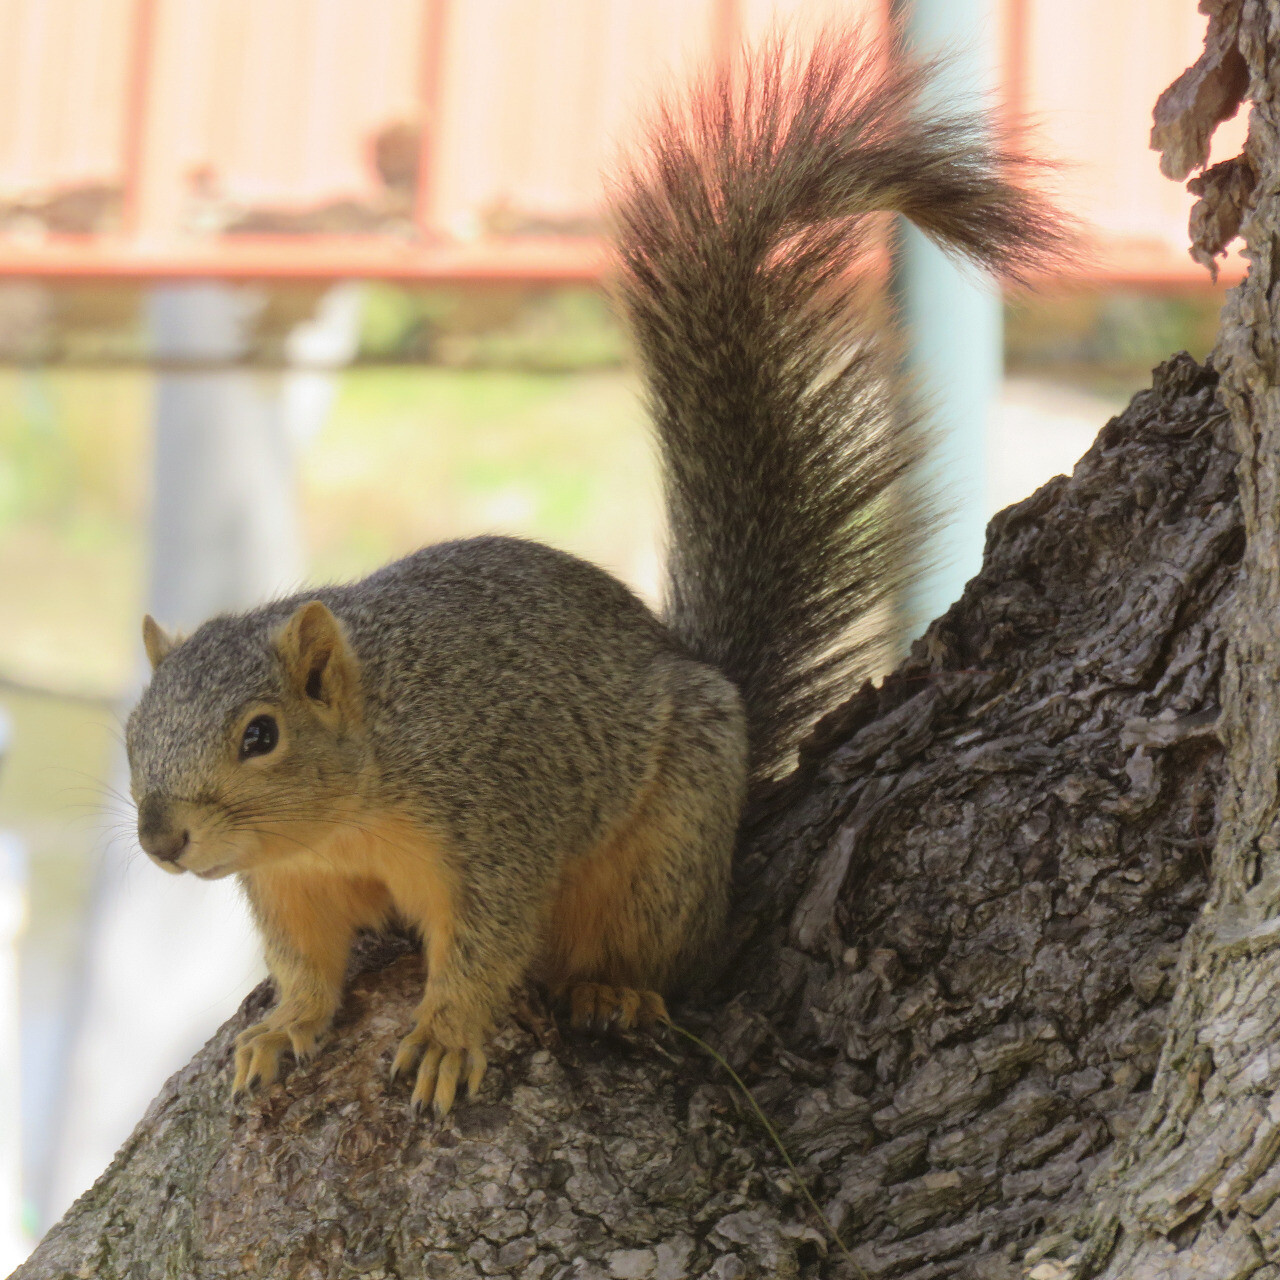 This fox squirrel was hiding at the base of a bush in a city park. ...